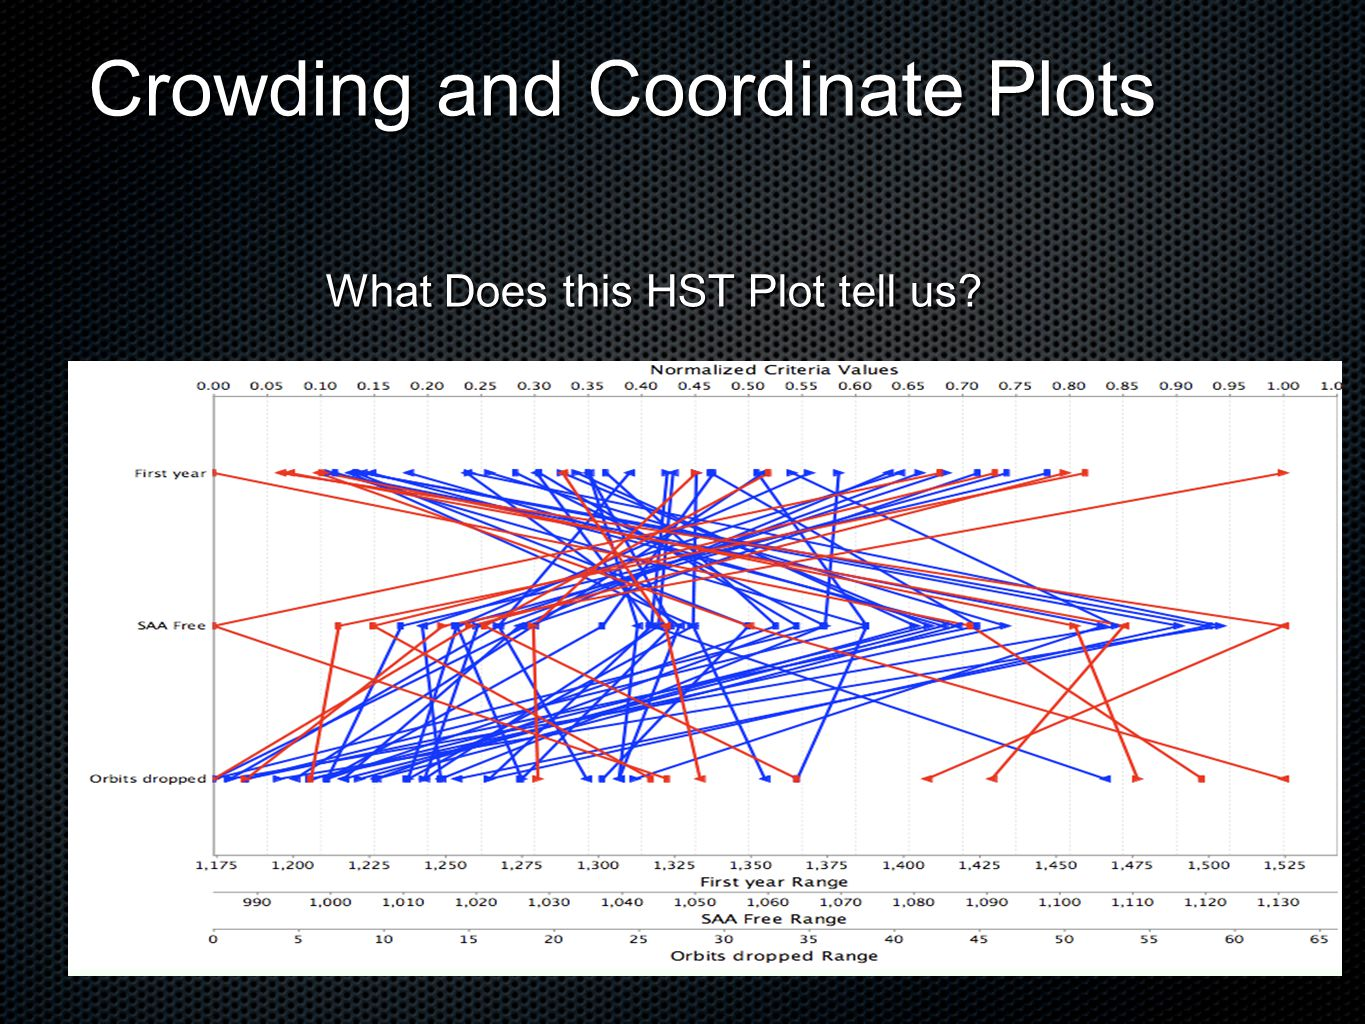 Crowding and Coordinate Plots What Does this HST Plot tell us?